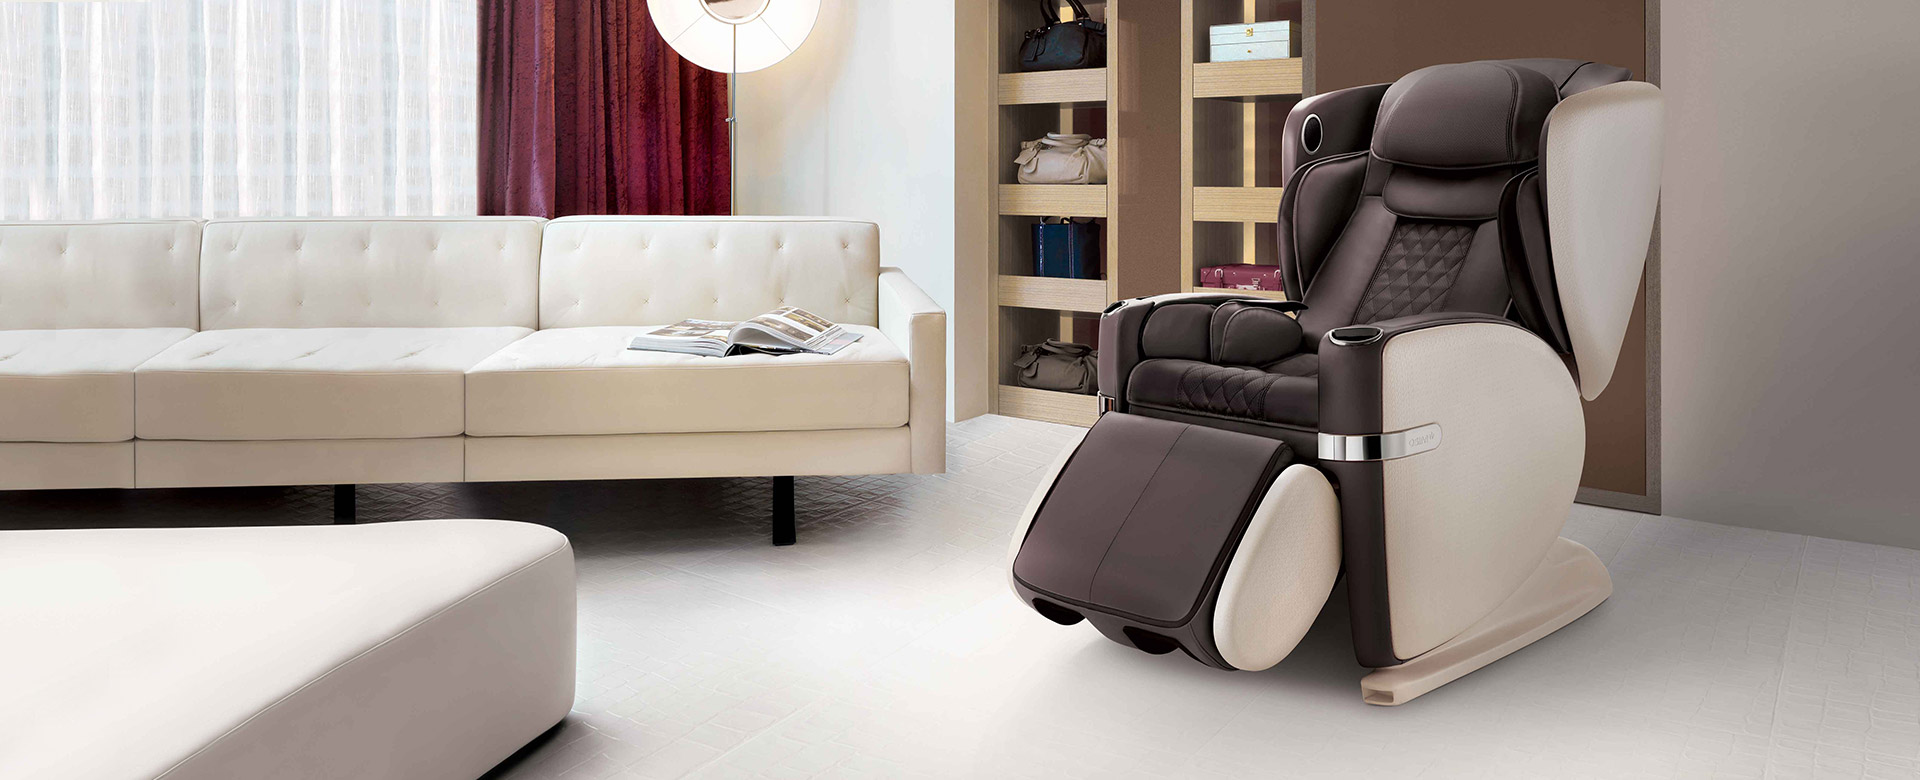 Ulove Massage Chair Slide 3 Brown Color